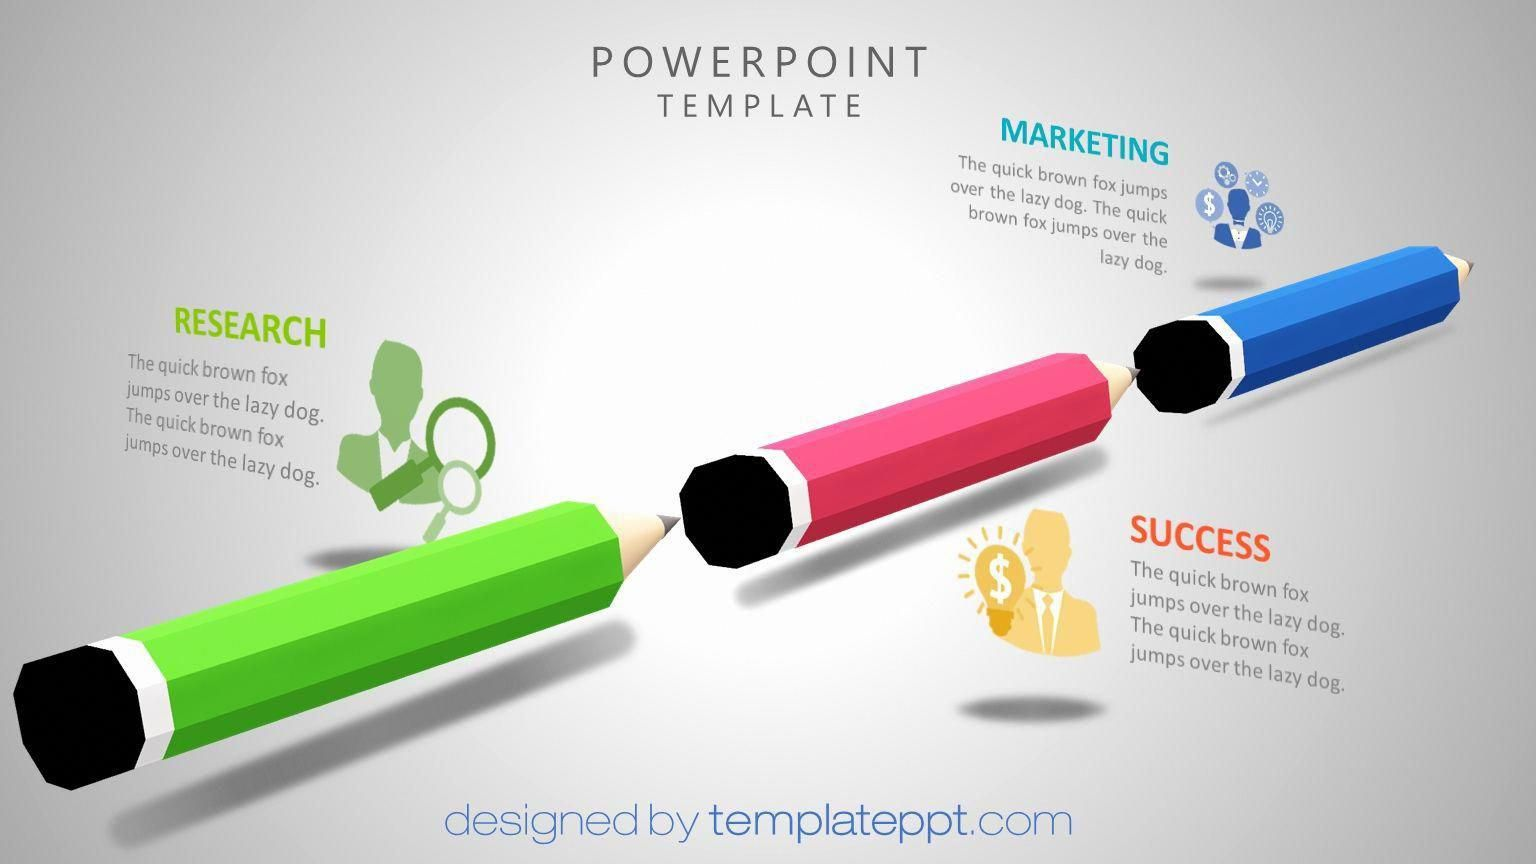 Powerpoint Animated Templates Free Download Beautiful Best Animated Ppt Templates Free Animation Effects Powerpoint Templates Infographic Powerpoint Powerpoint